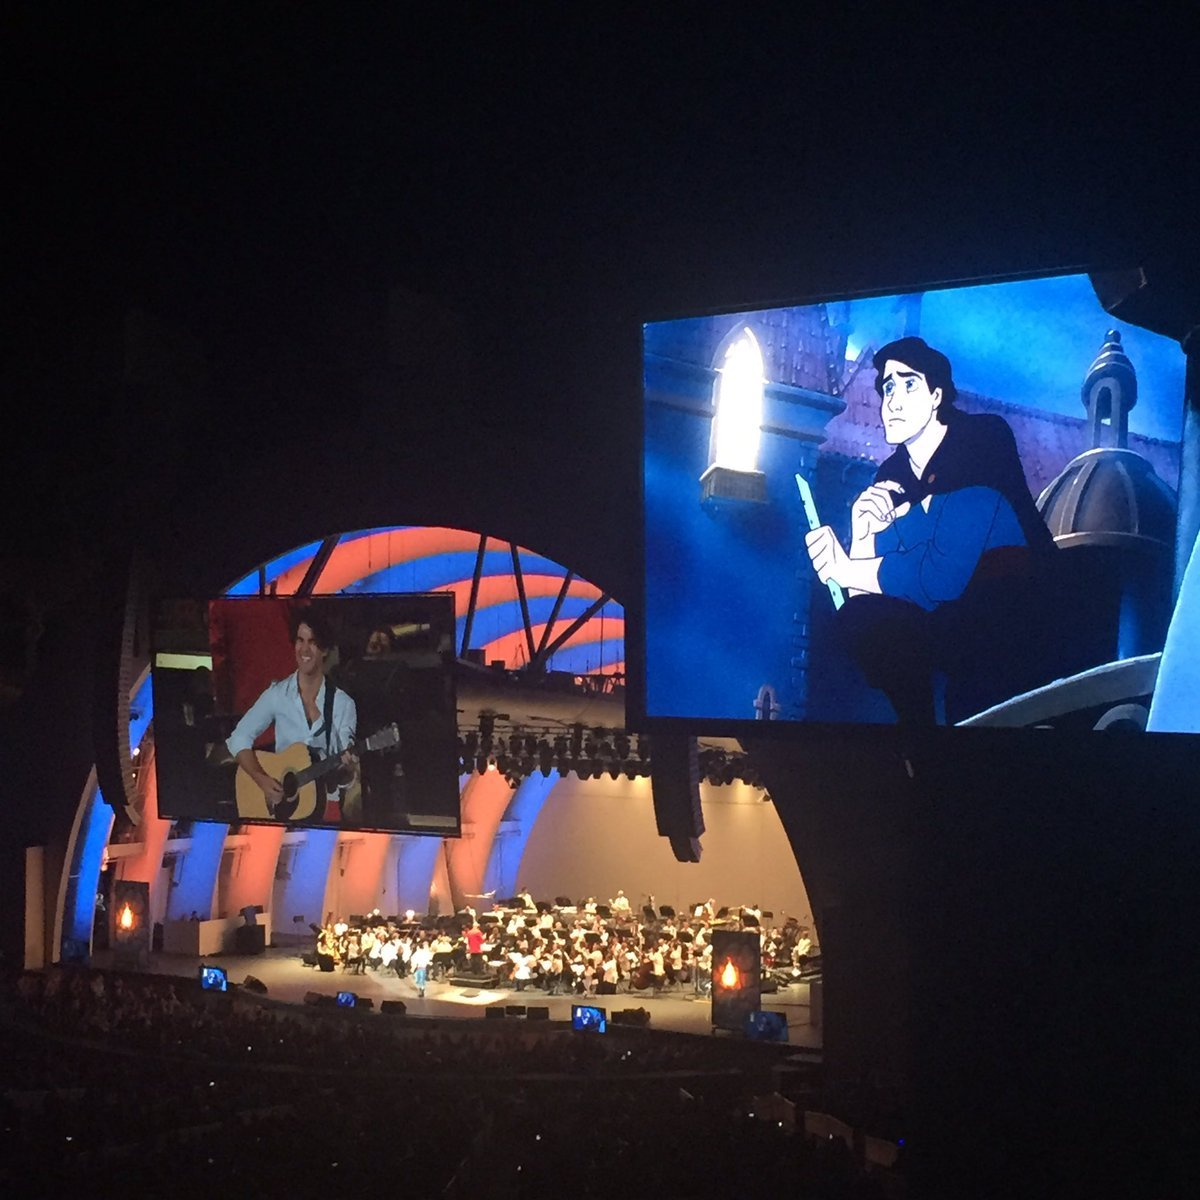 The Little Mermaid at the Hollywood Bowl on June 3, 4, and 6, 2016 - Page 2 Tumblr_o8afx5cpp01uetdyxo4_1280